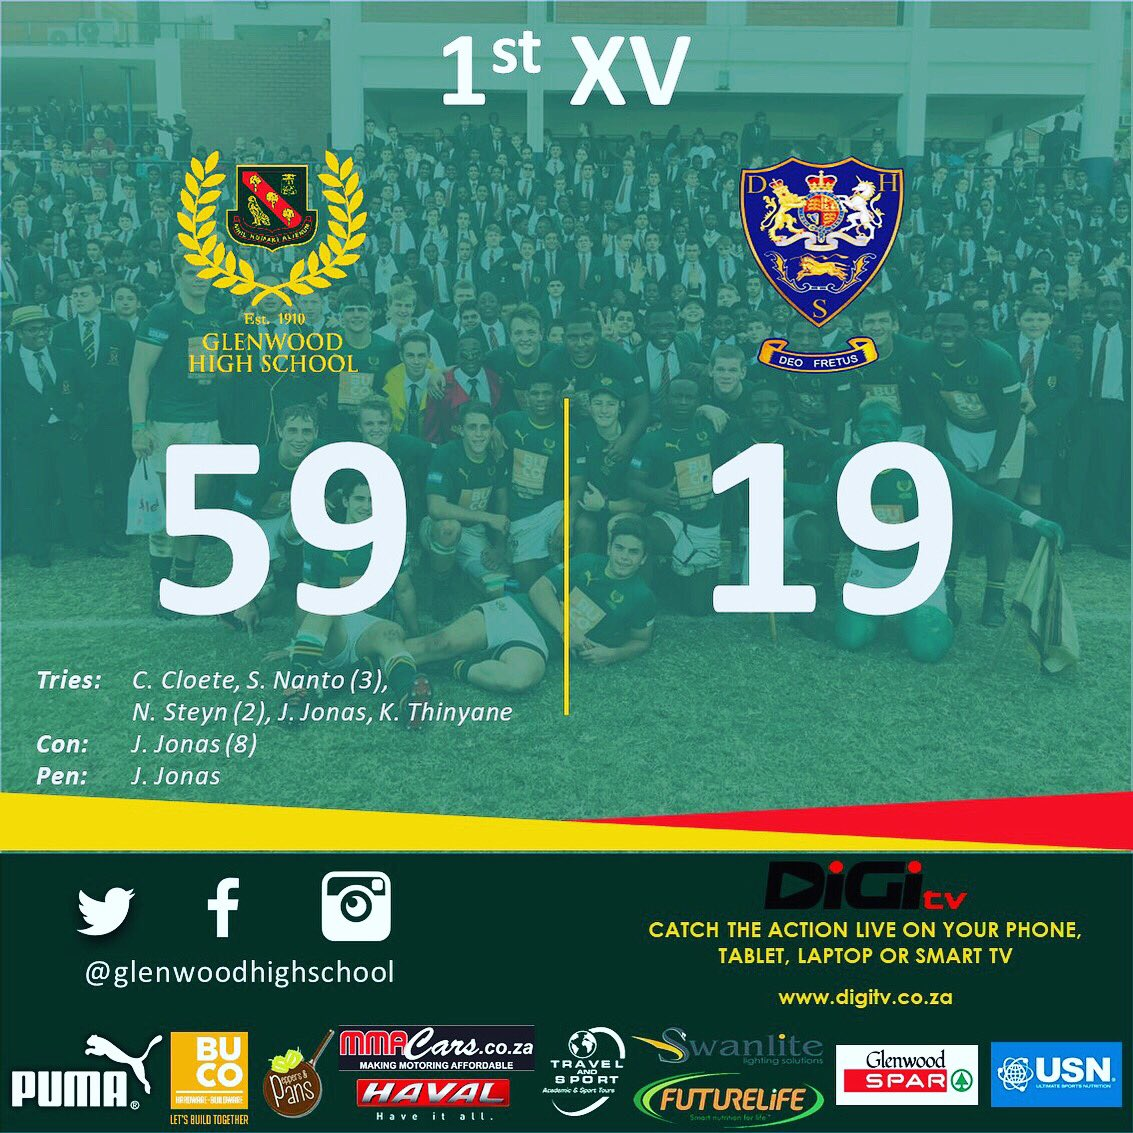 D7-9UzzXoAAAgrR School of Rugby | Michaelhouse - School of Rugby